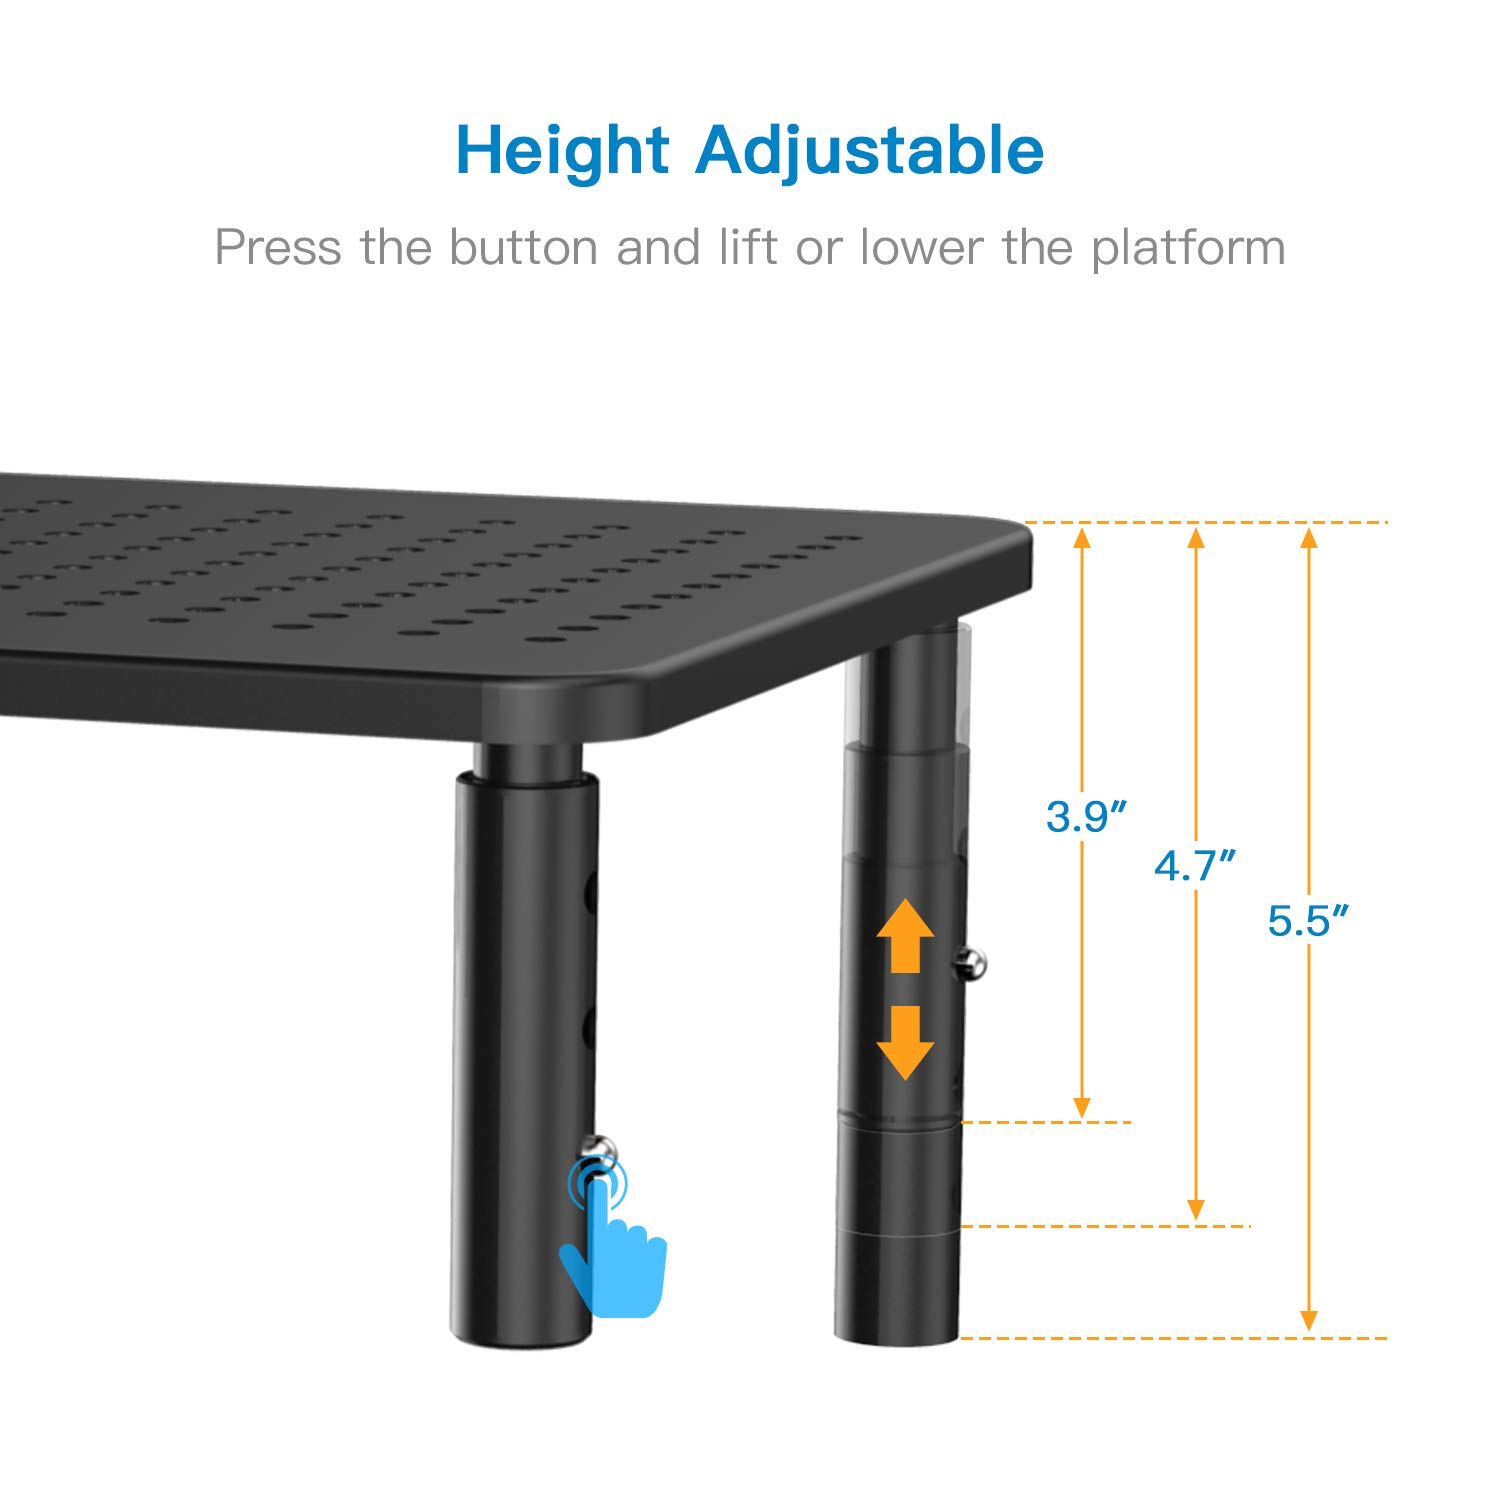 Monitor Stand Riser - 3 Height Adjustable Monitor Stand for Laptop, Computer, iMac, PC, Printer, Desktop Ergonomic Metal Monitor Riser Stand with Mesh Platform for Airflow by HUANUO (2 Pack) by HUANUO (Image #2)